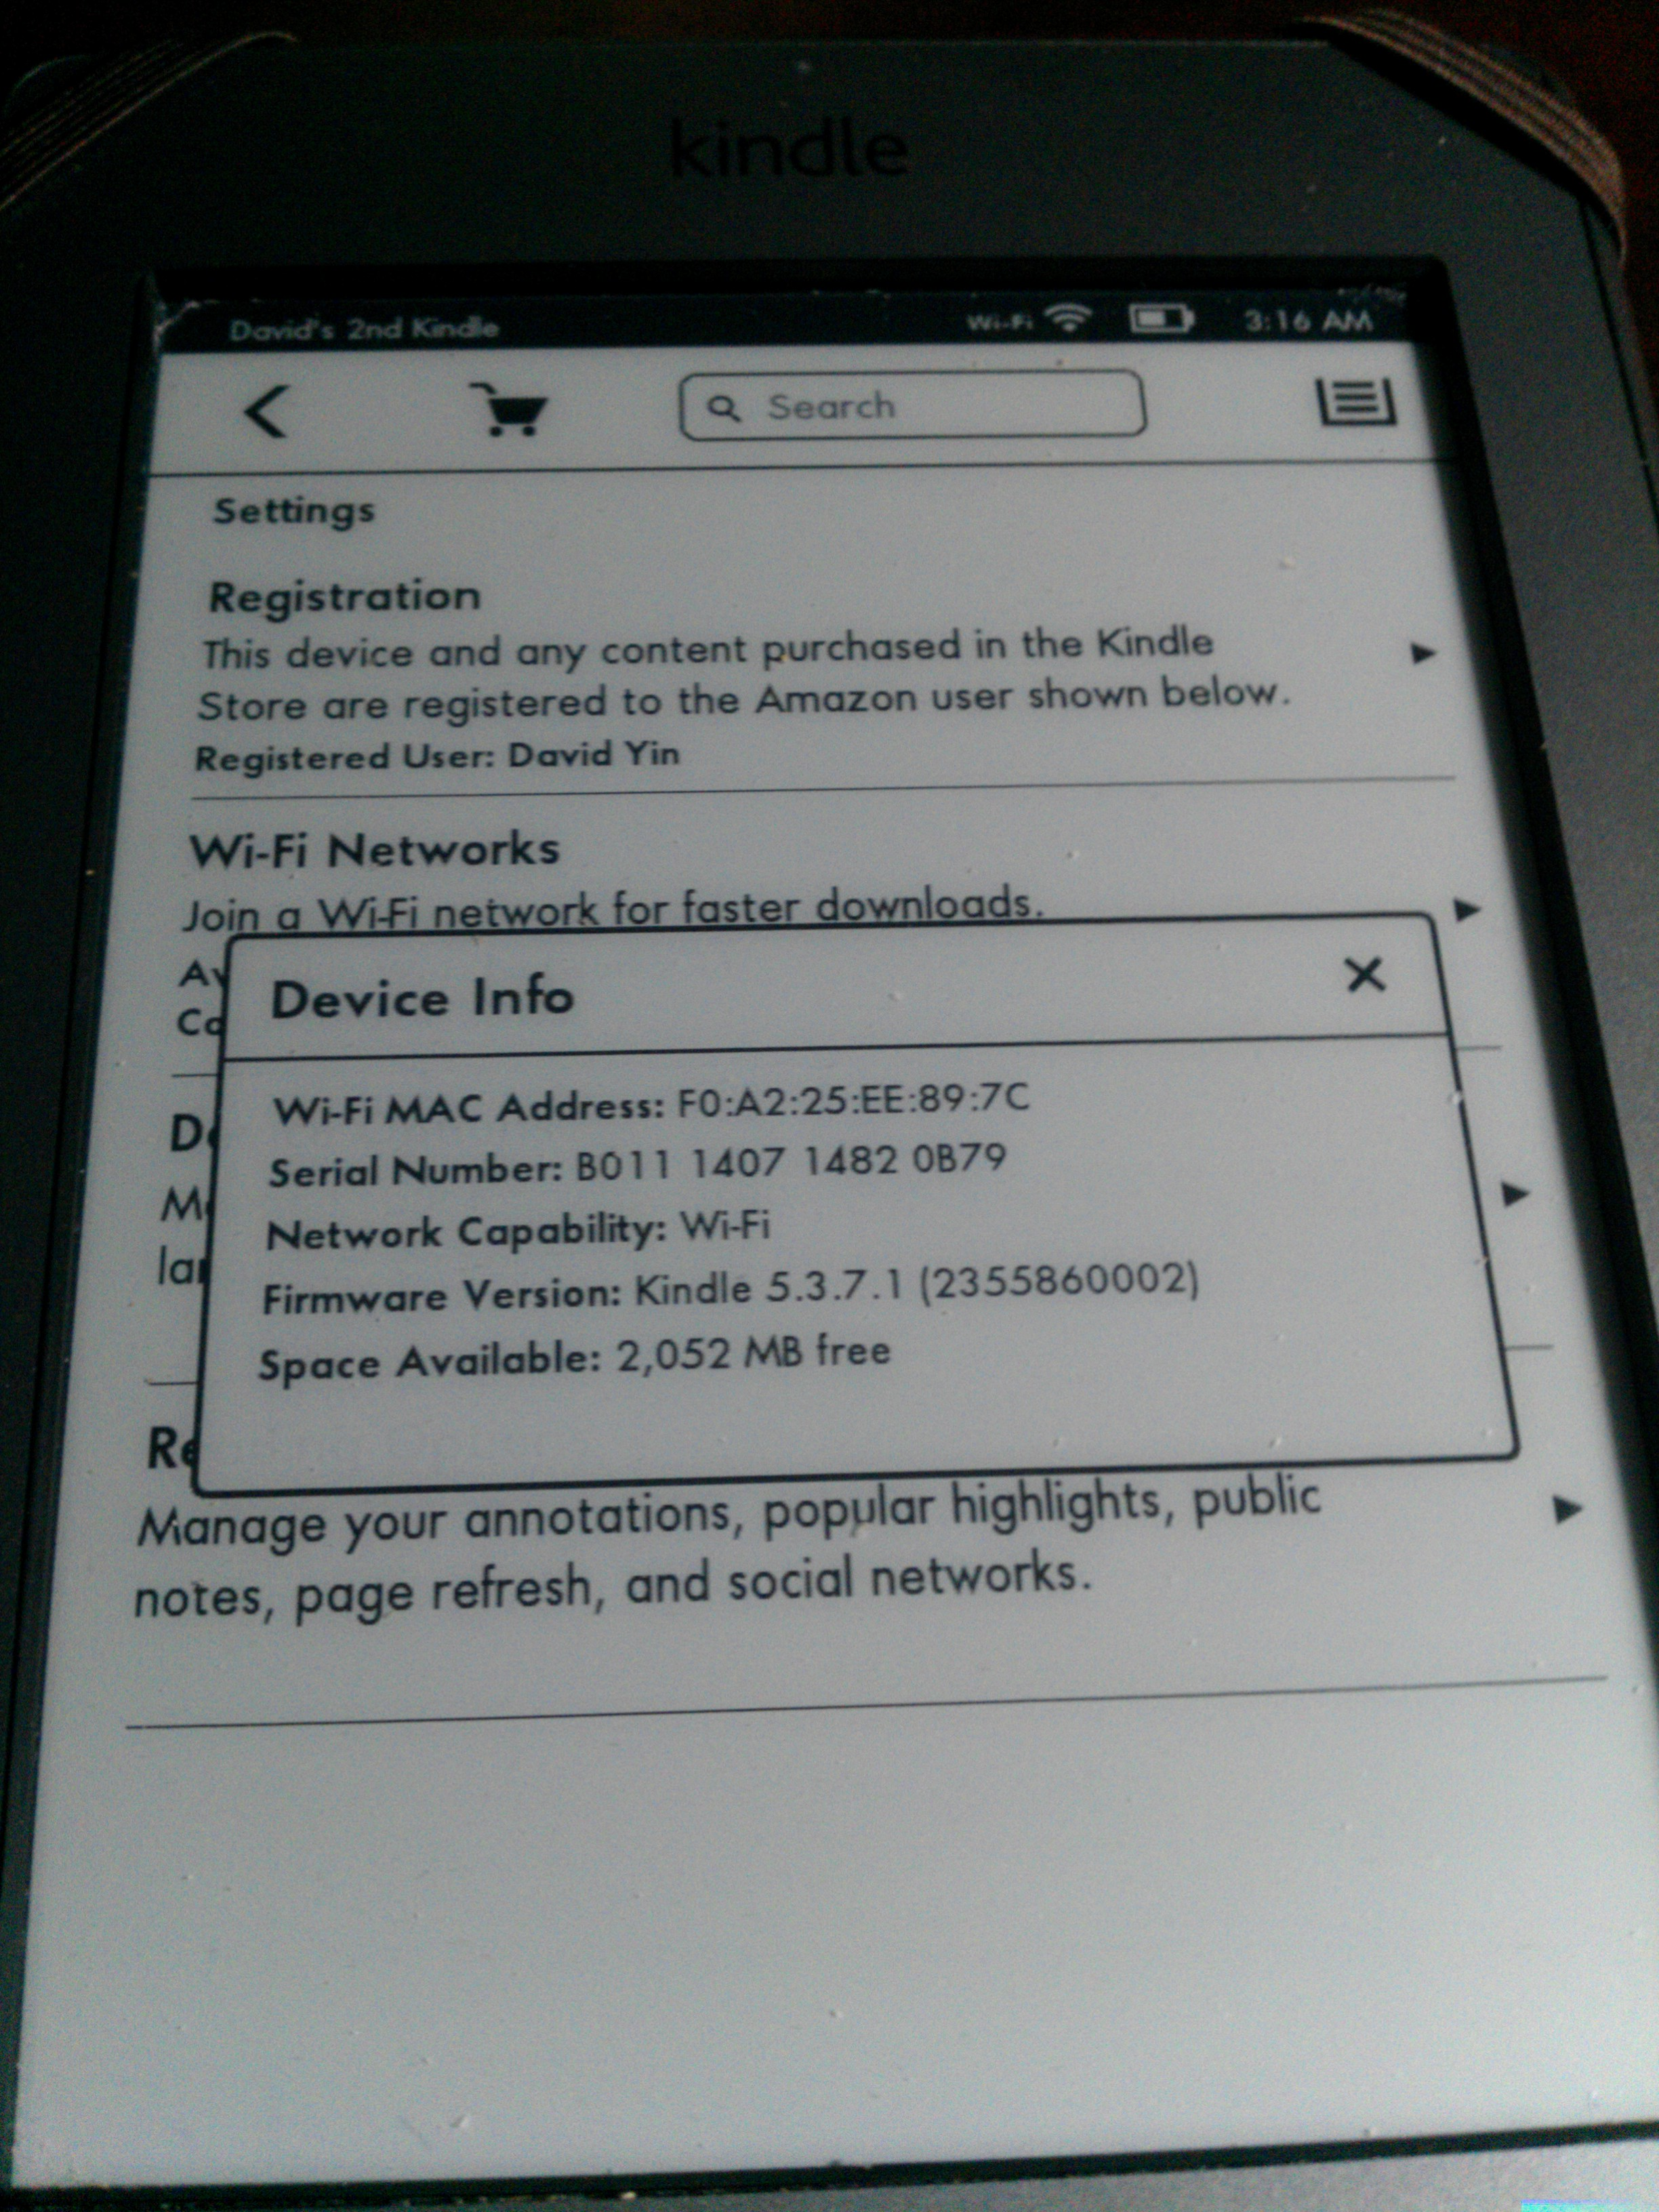 Kindle touch version 5.3.7.1